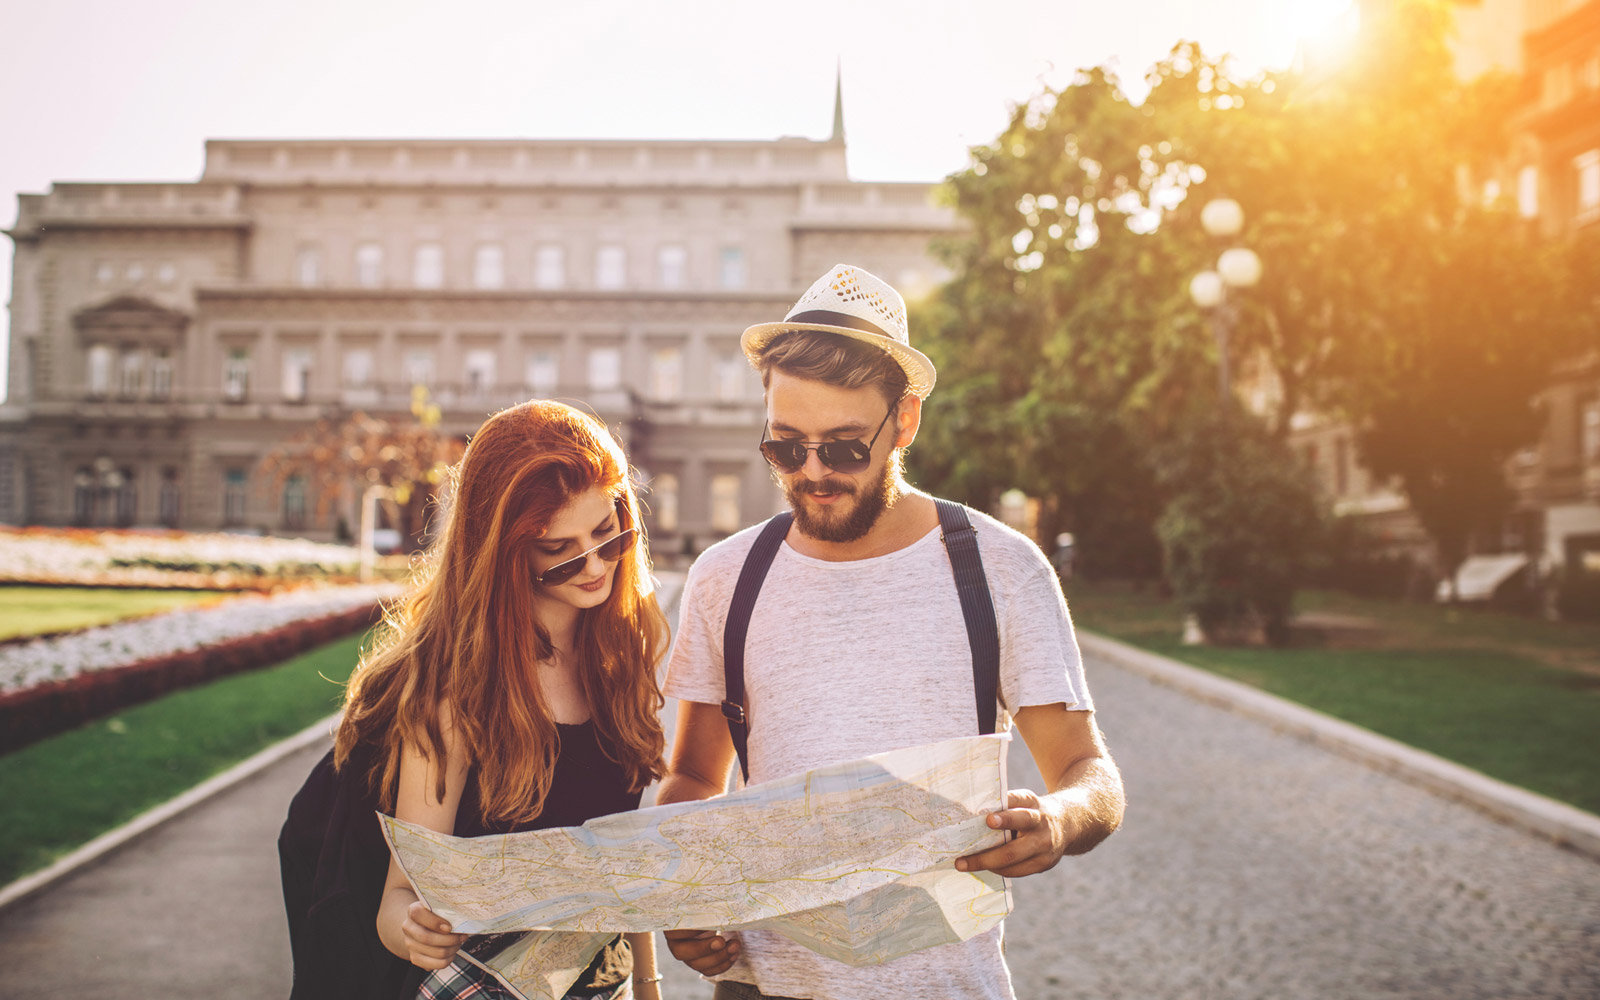 Young couple touring a foreign city. Holding map to find their destination. Wearing casual clothes. Enjoying in beautiful sunny day.